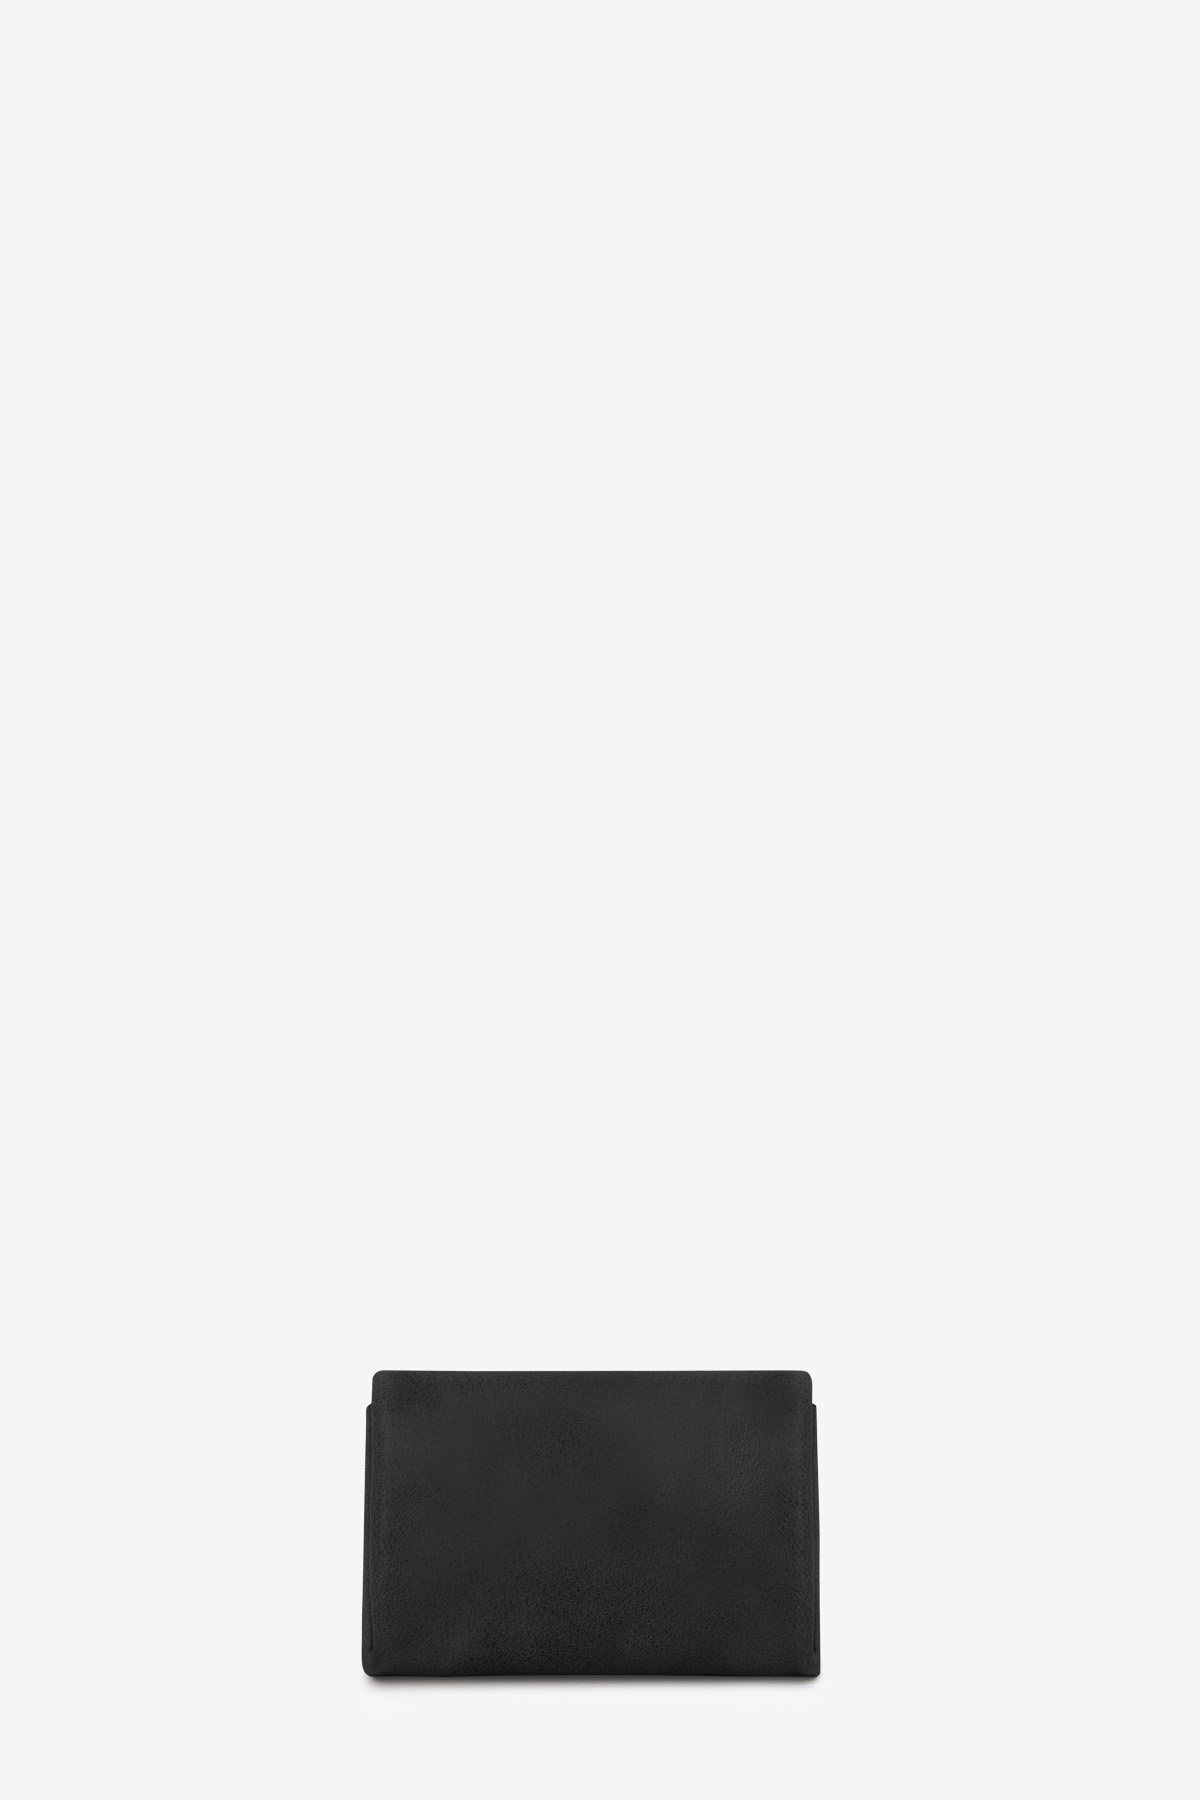 dclr001-youthwallet-a1-black-back